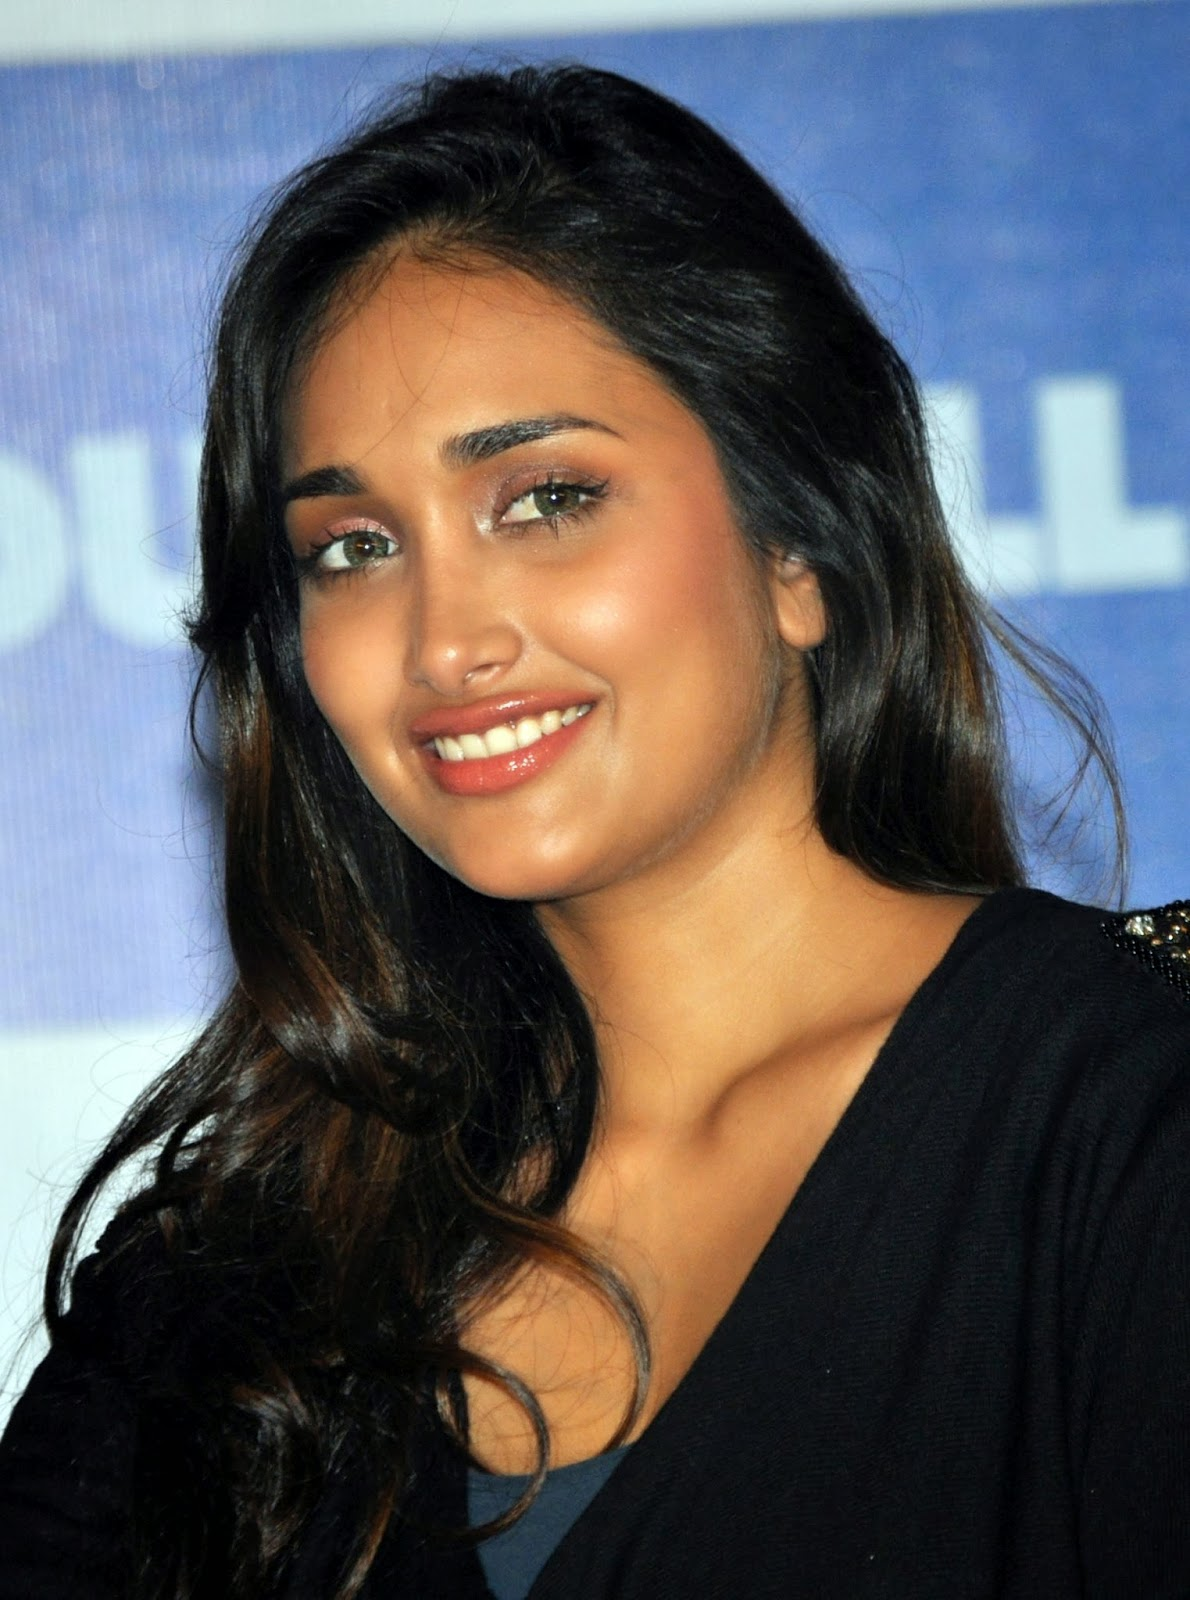 Actress, Bollywood, British-born, Case, Housefull, India, Jiah Khan, Rabiya Khan, Showbiz, Suicide,